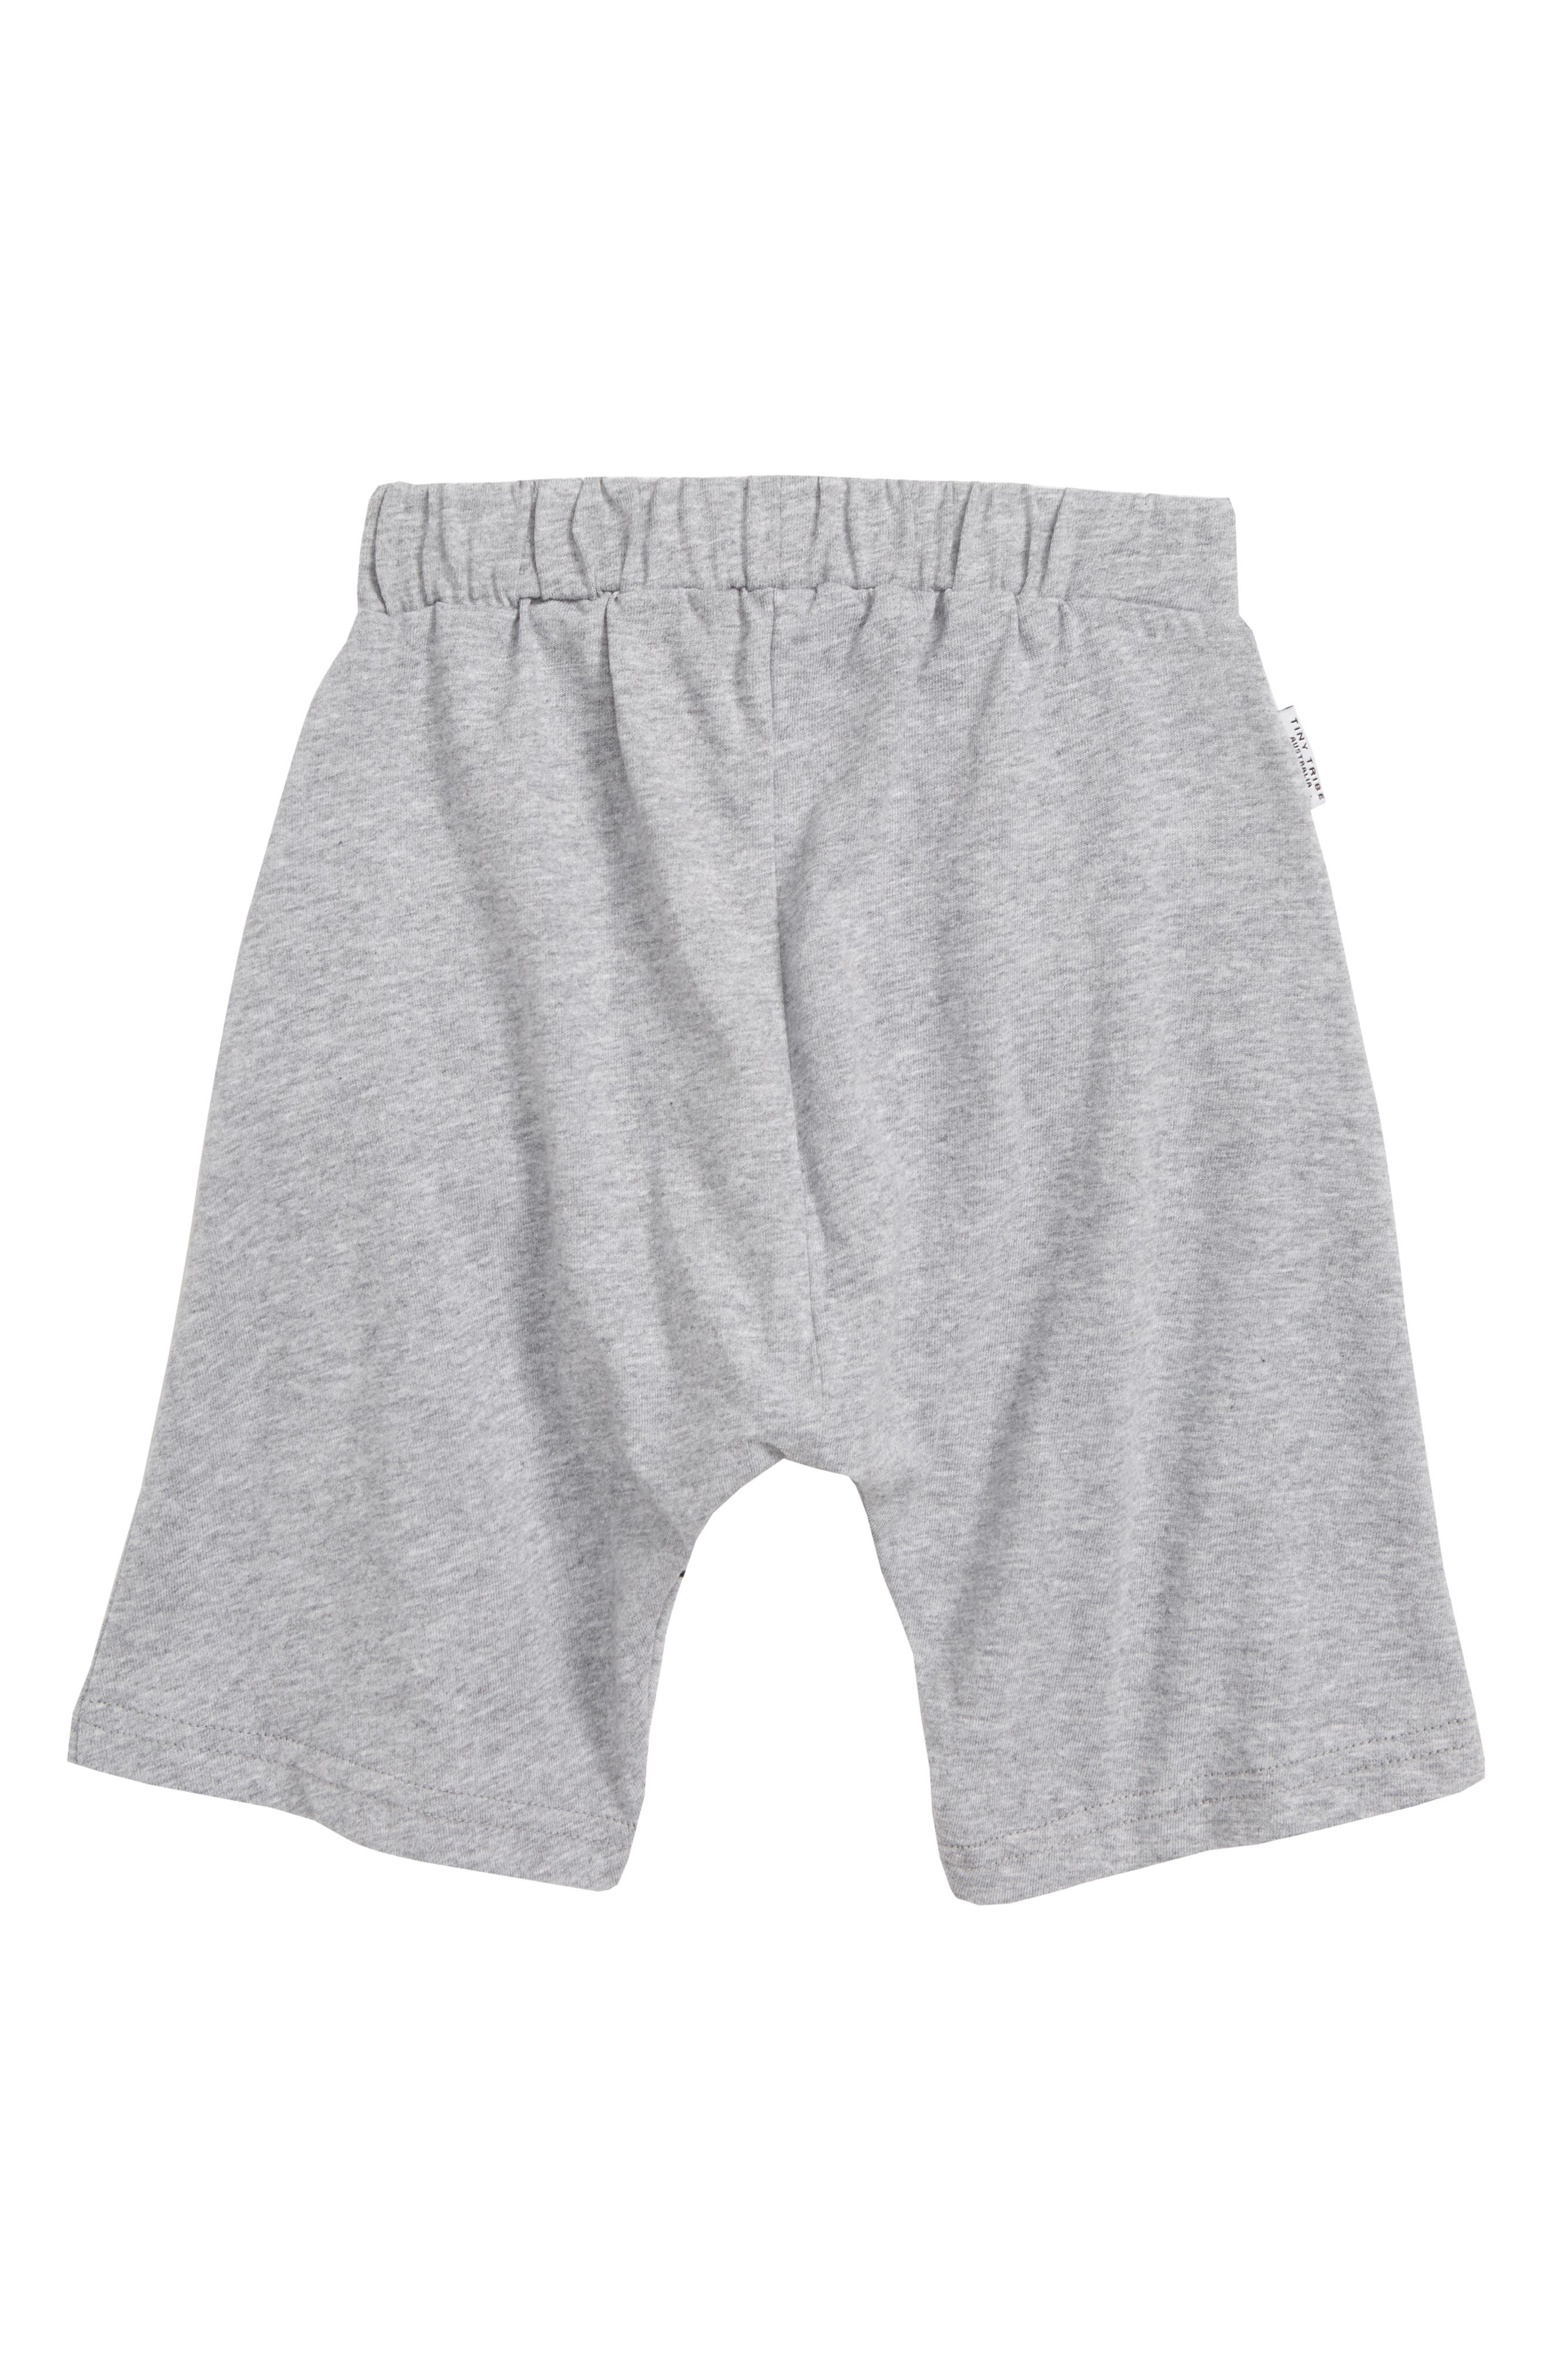 Ice Cream Knit Shorts,                             Alternate thumbnail 2, color,                             Grey